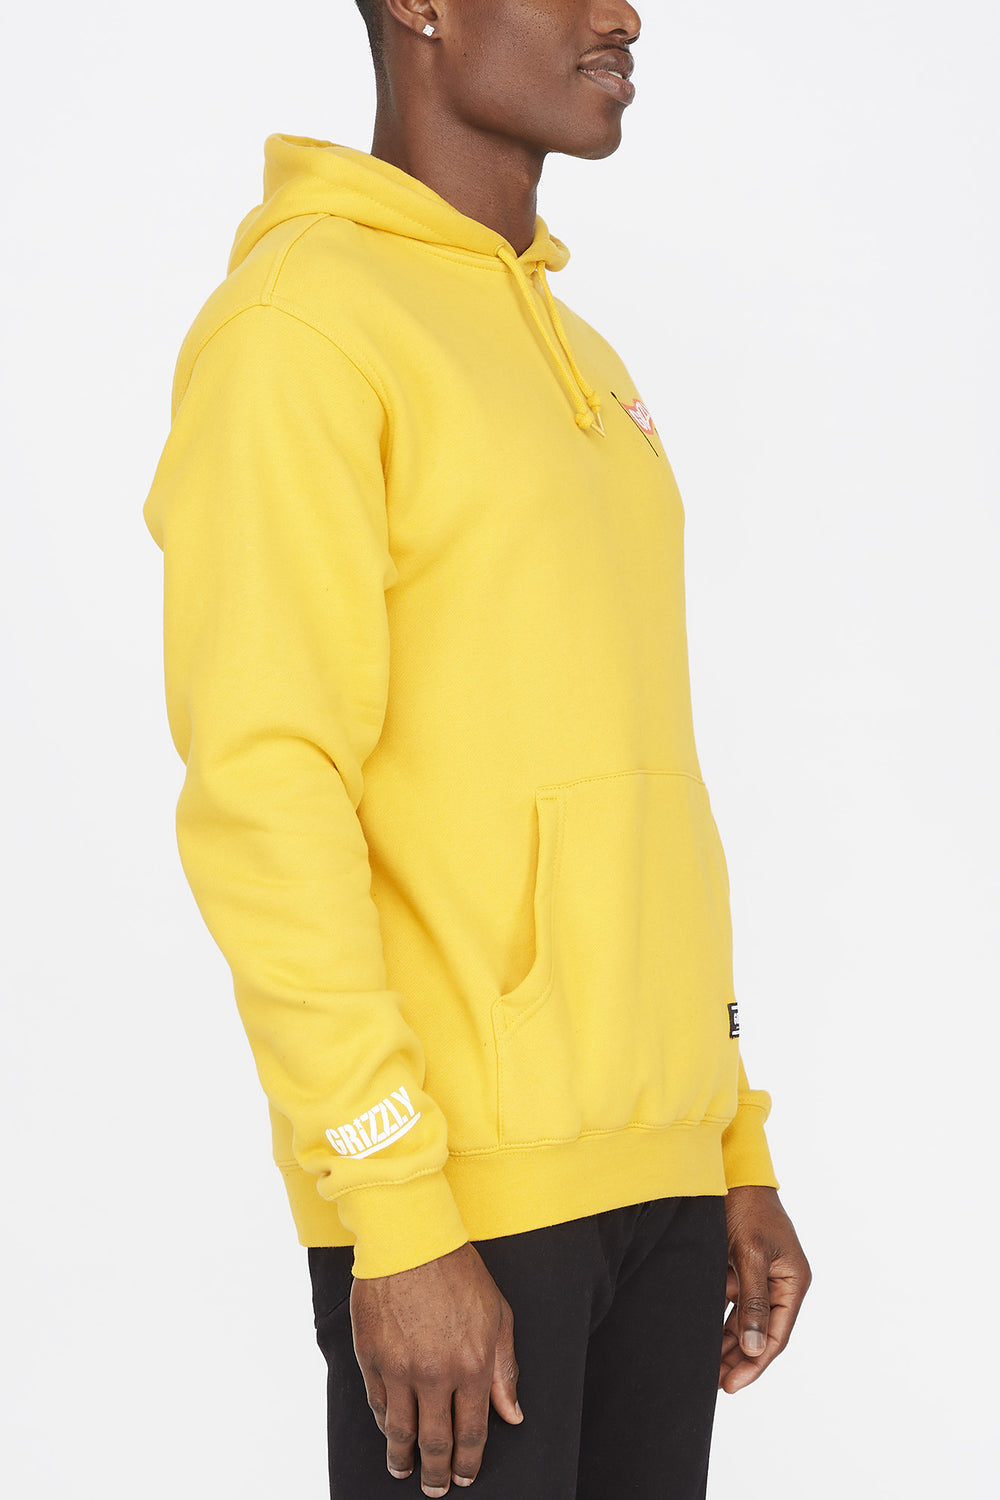 Grizzly Mens Flag Pole Yellow Hoodie Yellow